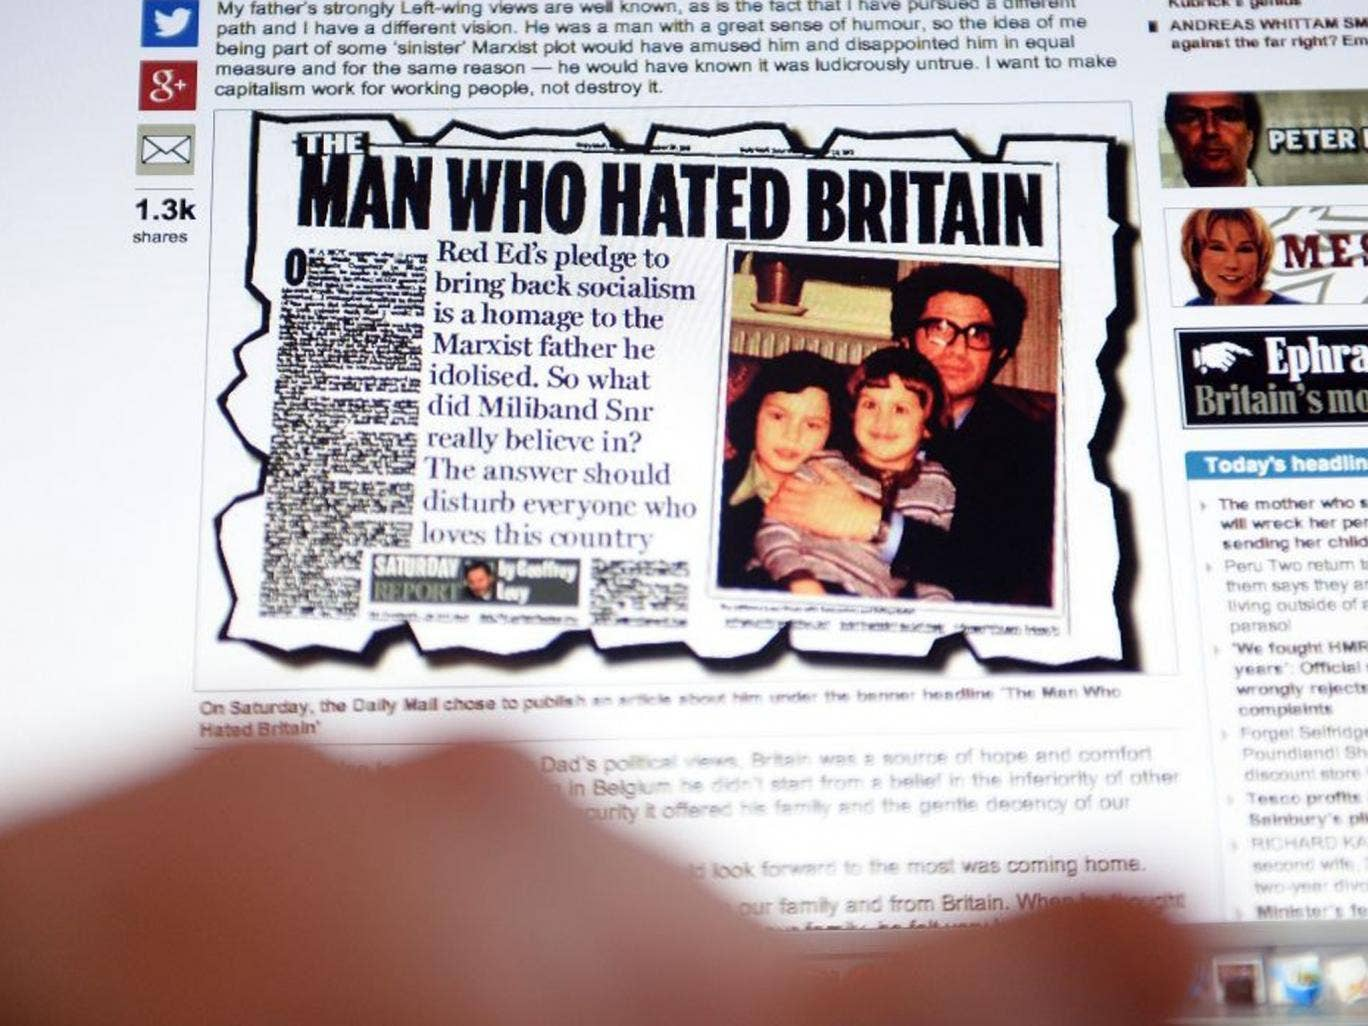 Ed Miliband's response on the Mail's website, illustrated with the original article attaching his father